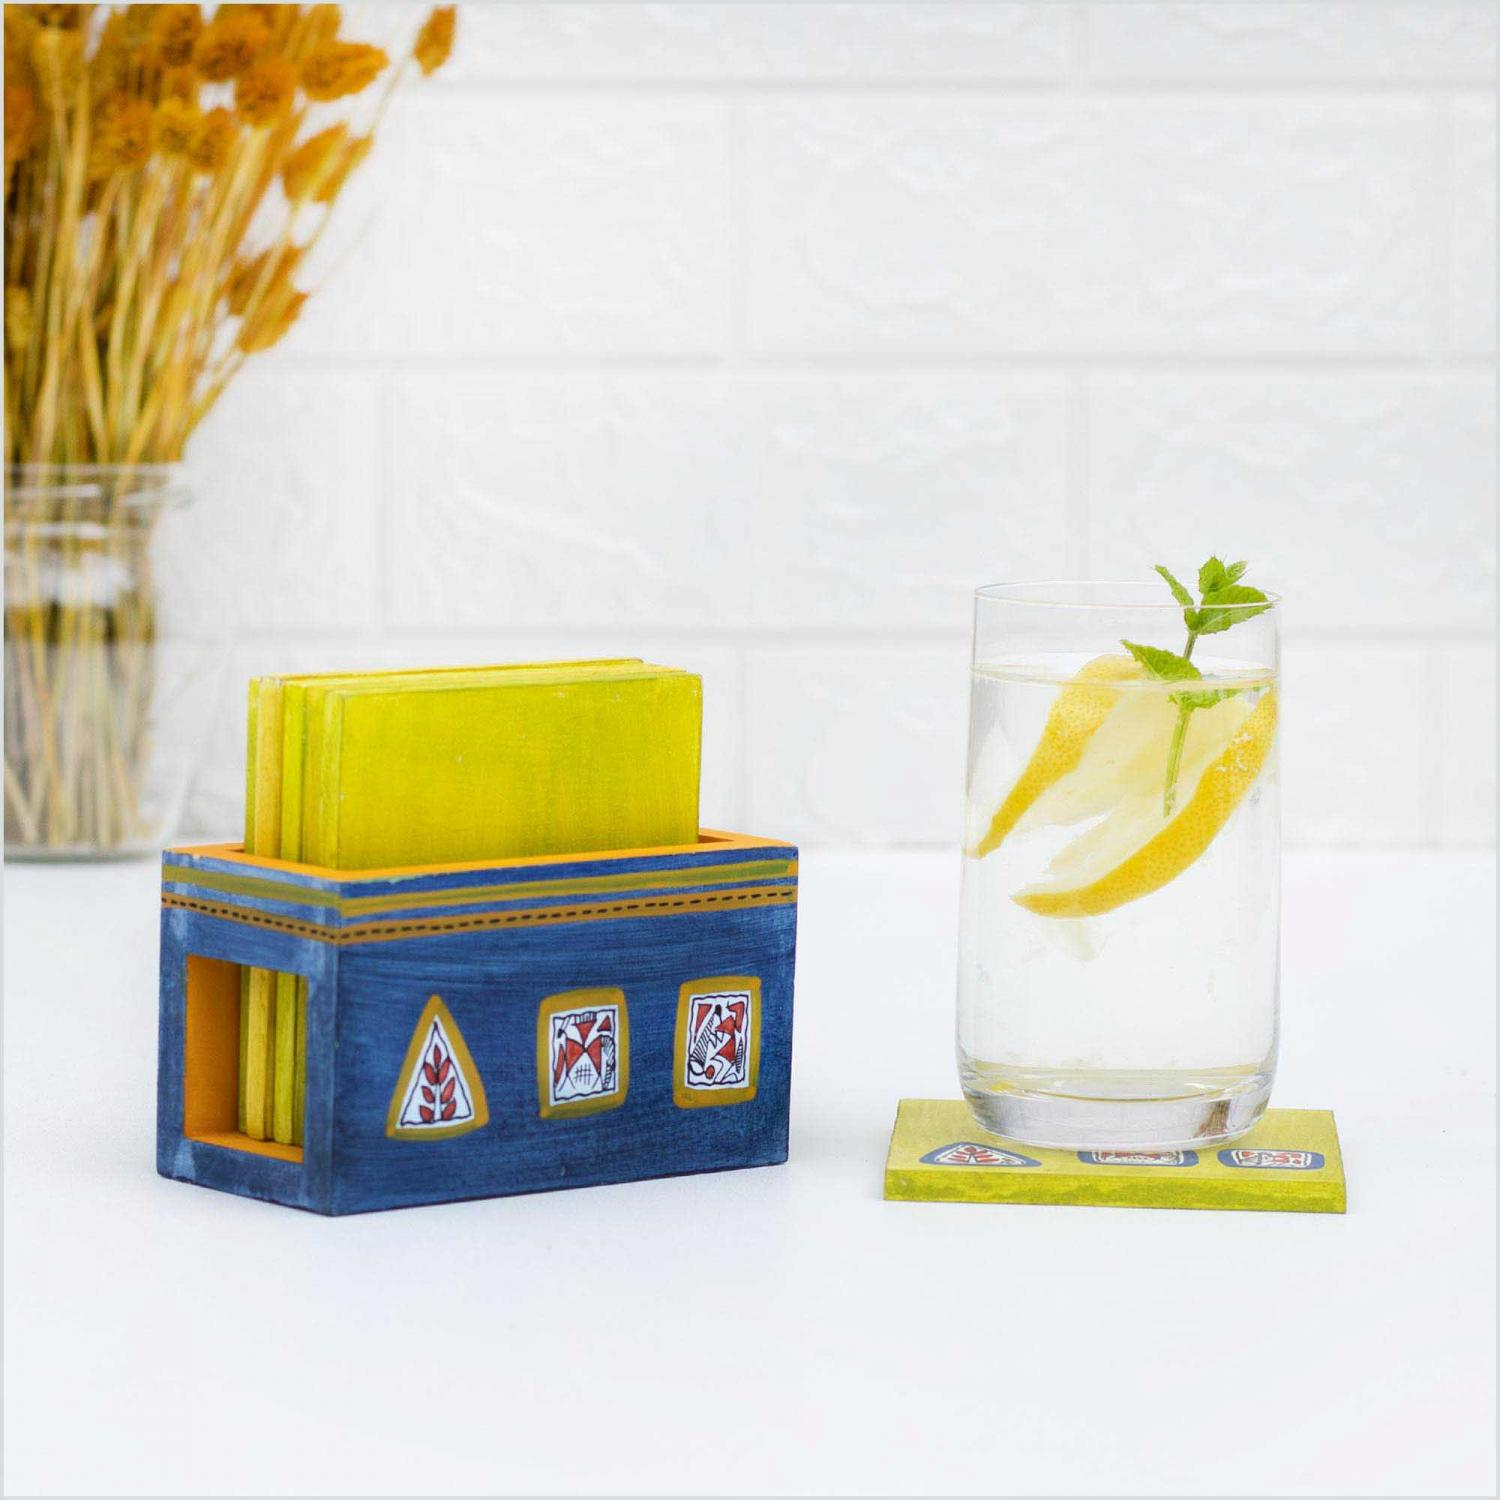 Wooden coaster set placed in a holder in blue and yellow colors standing on a white table next to a glass of water with lemon and mint leaves on top of a coaster with a white wall and dried flowers in the background